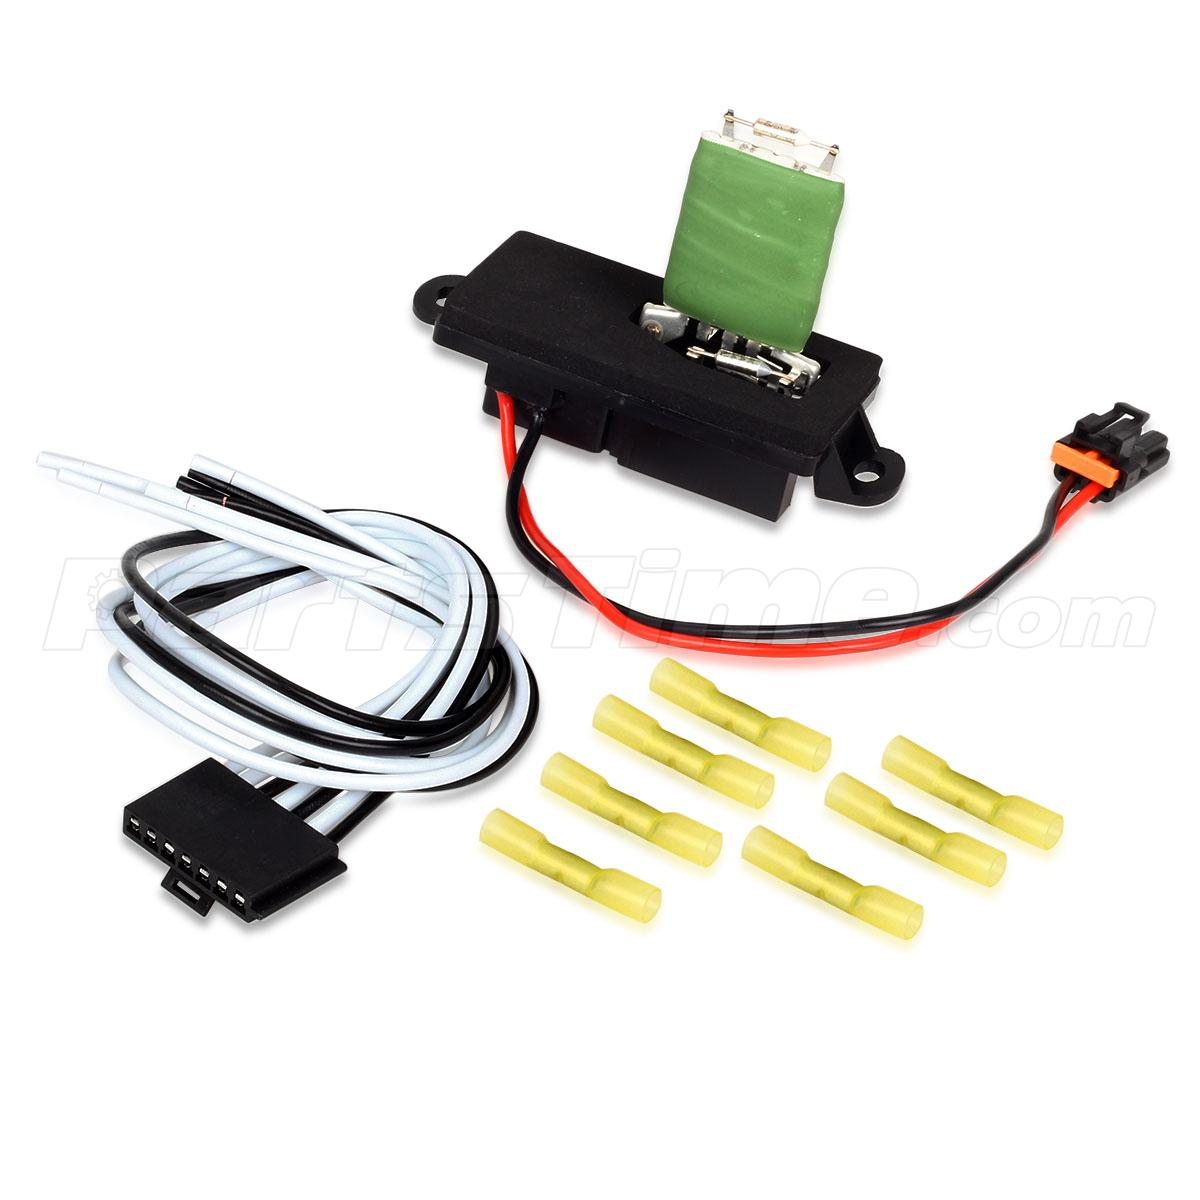 hvac blower harness hvac blower motor resistor w/ wire harness for cadillac chevy gmc # 15305077 | ebay